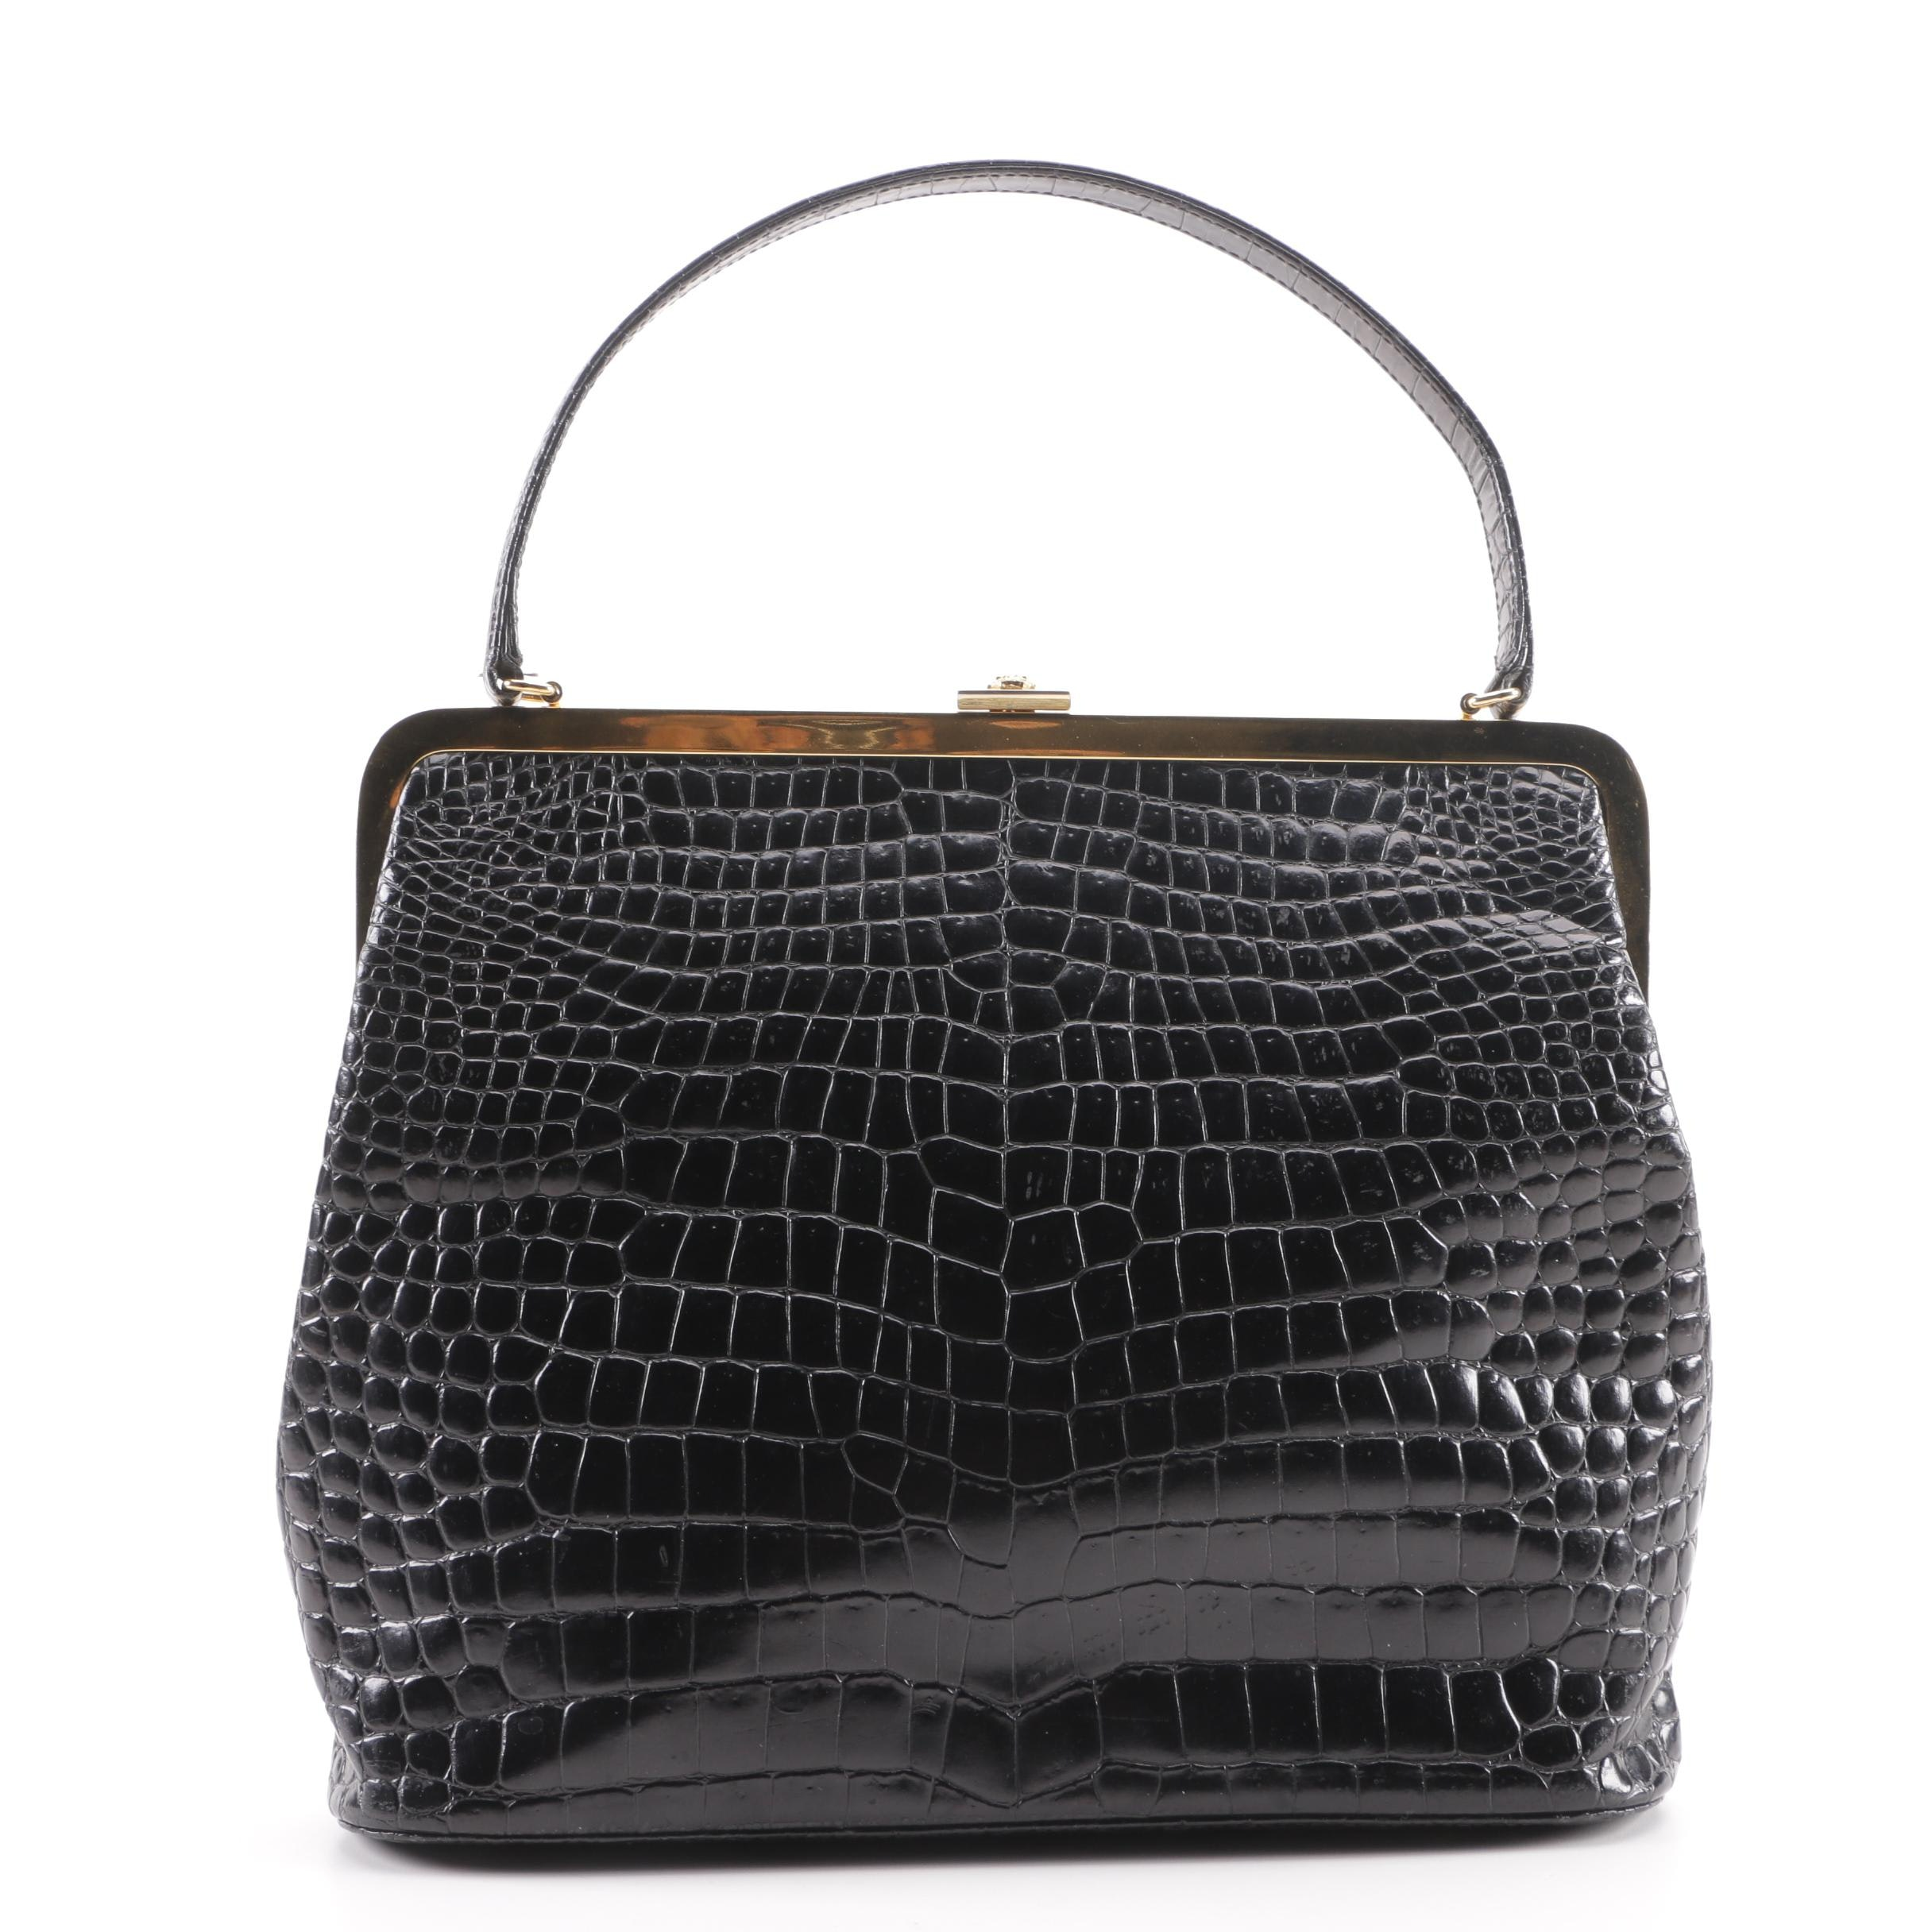 Gianni Versace Couture Alligator Embossed Black Leather Frame Bag, Made in Italy